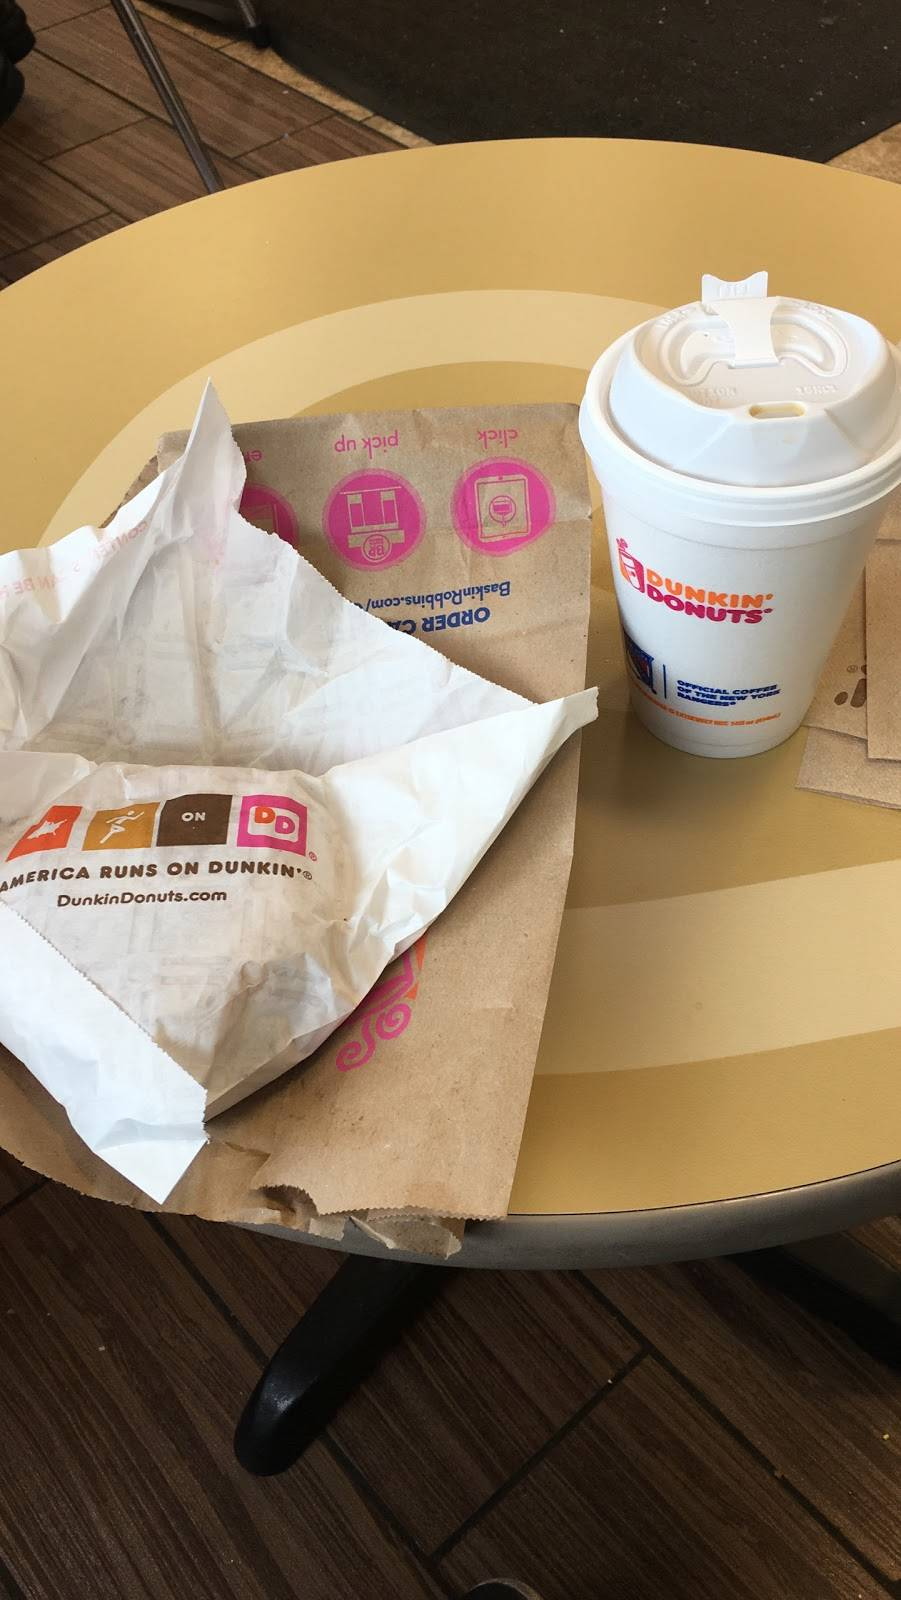 Dunkin Donuts   cafe   7016 Northern Blvd, Flushing, NY 11372, USA   7186721433 OR +1 718-672-1433